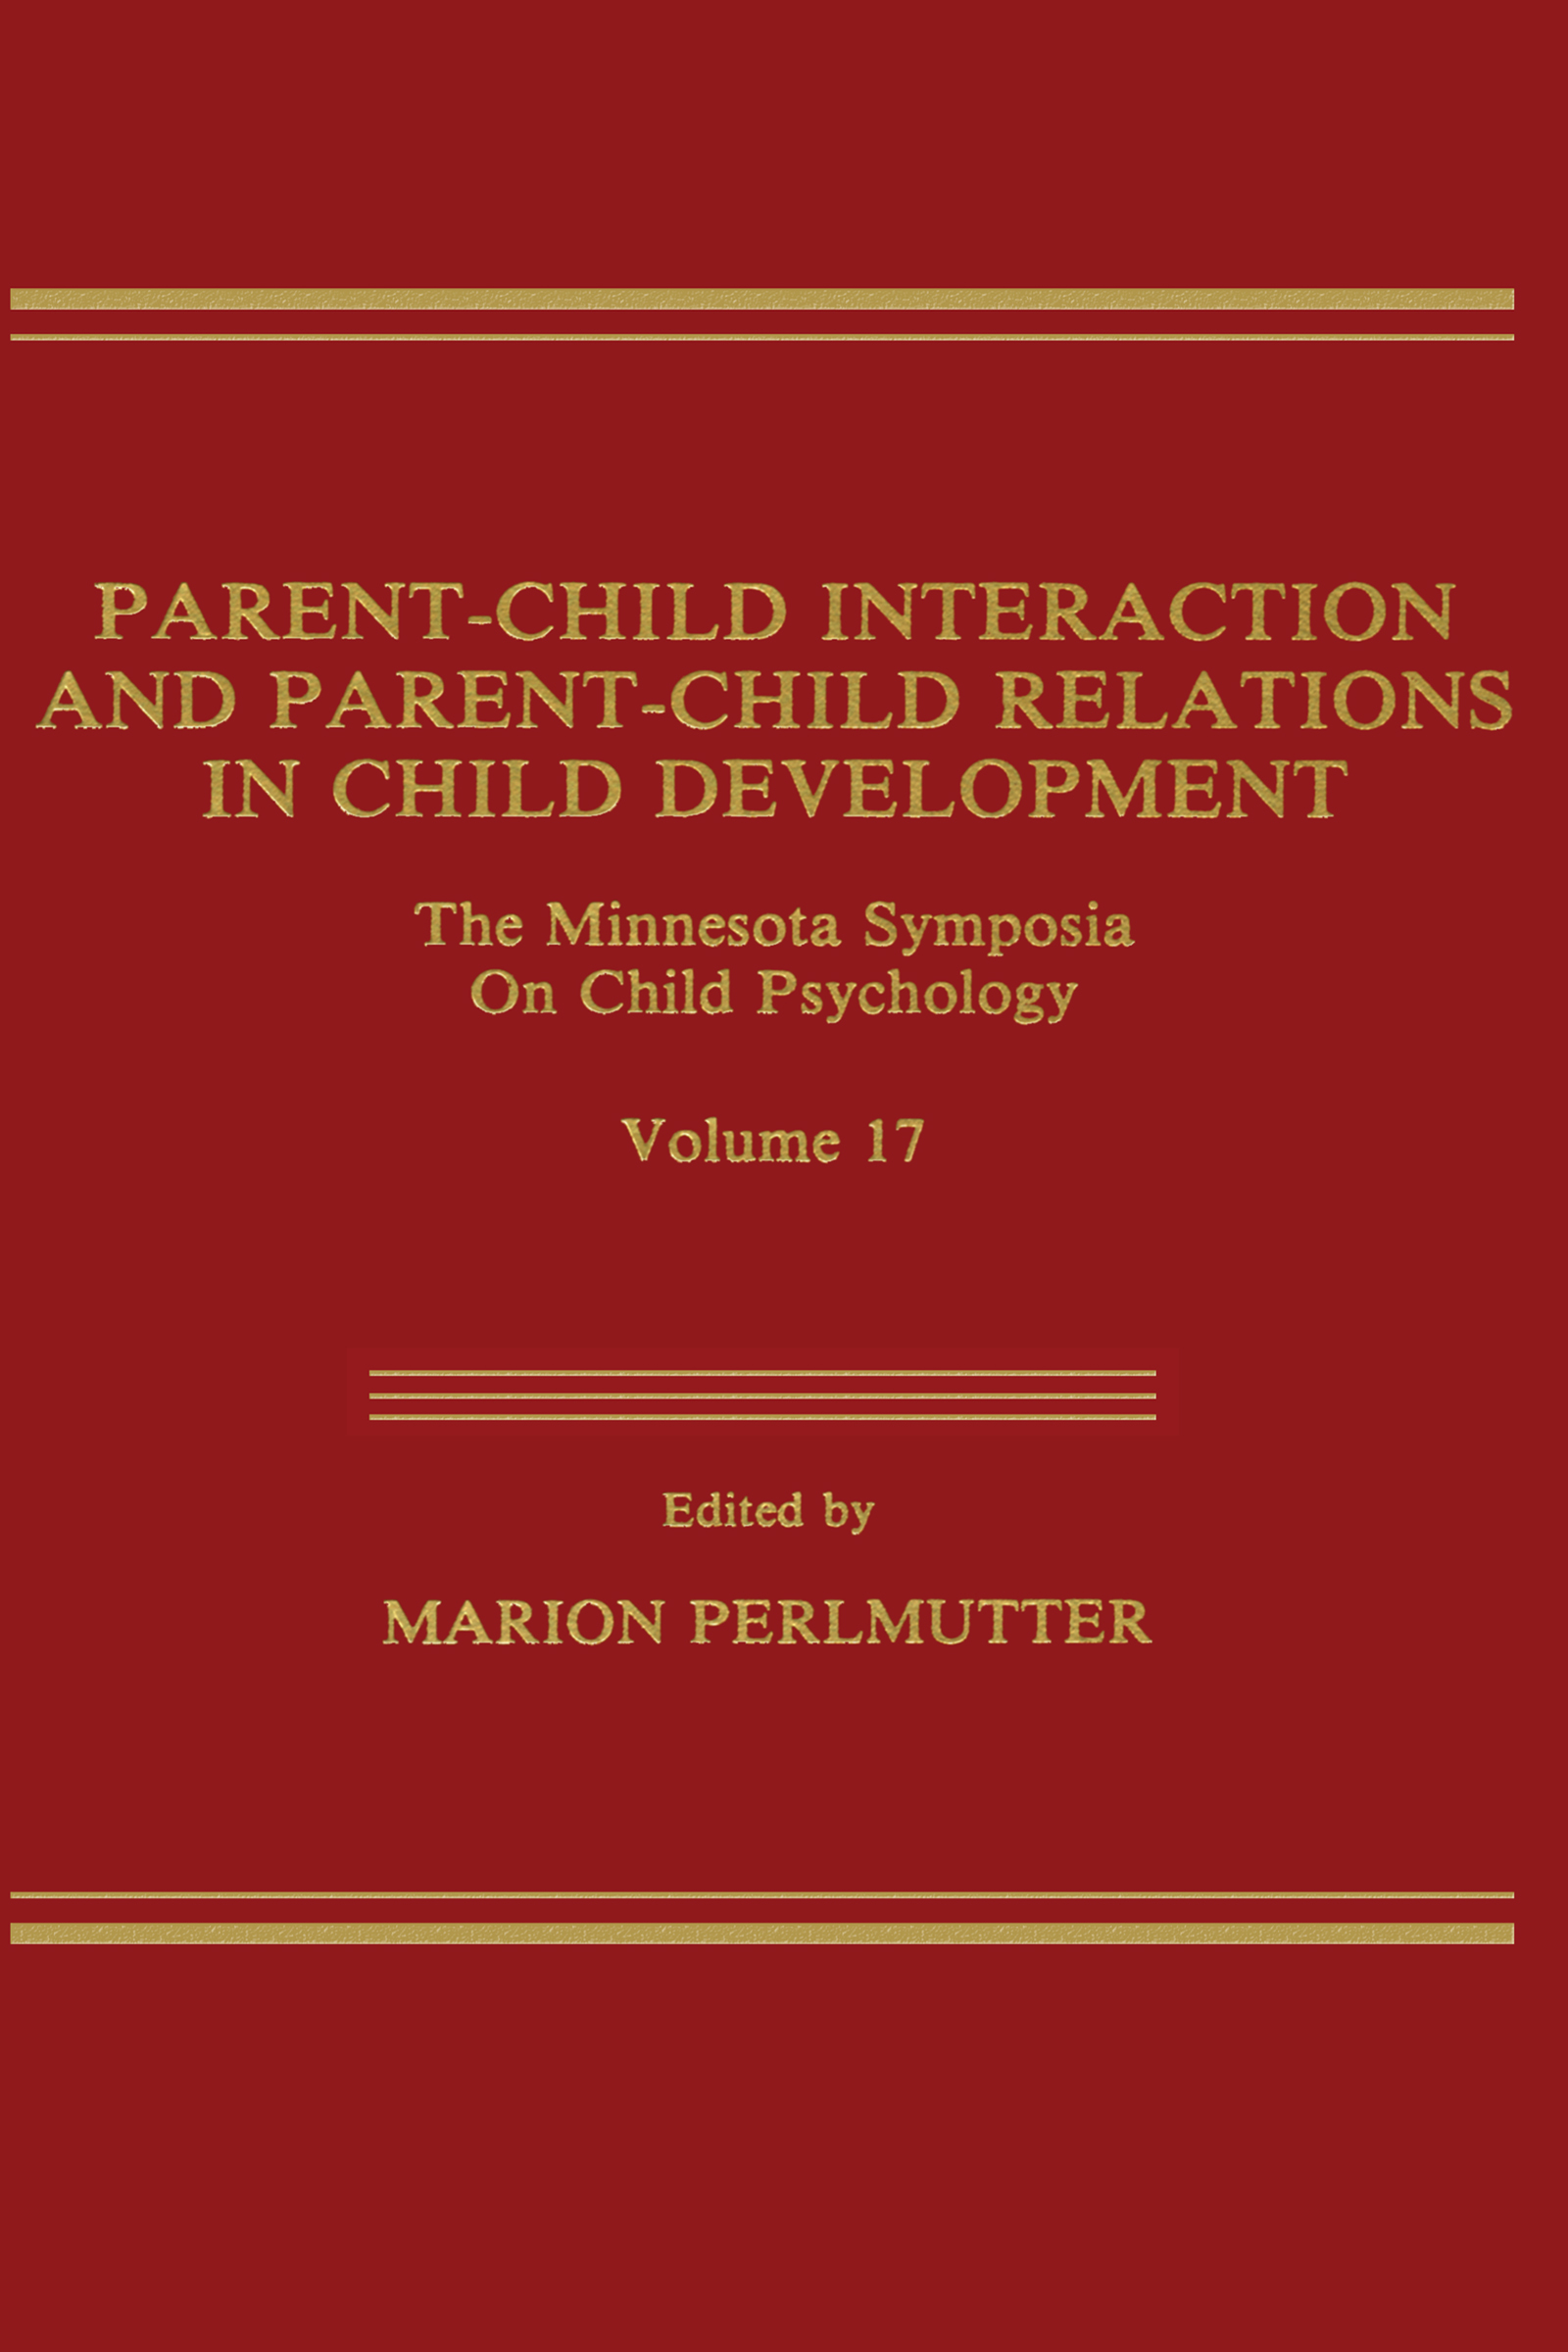 Parent-Child Interaction and Parent-Child Relations